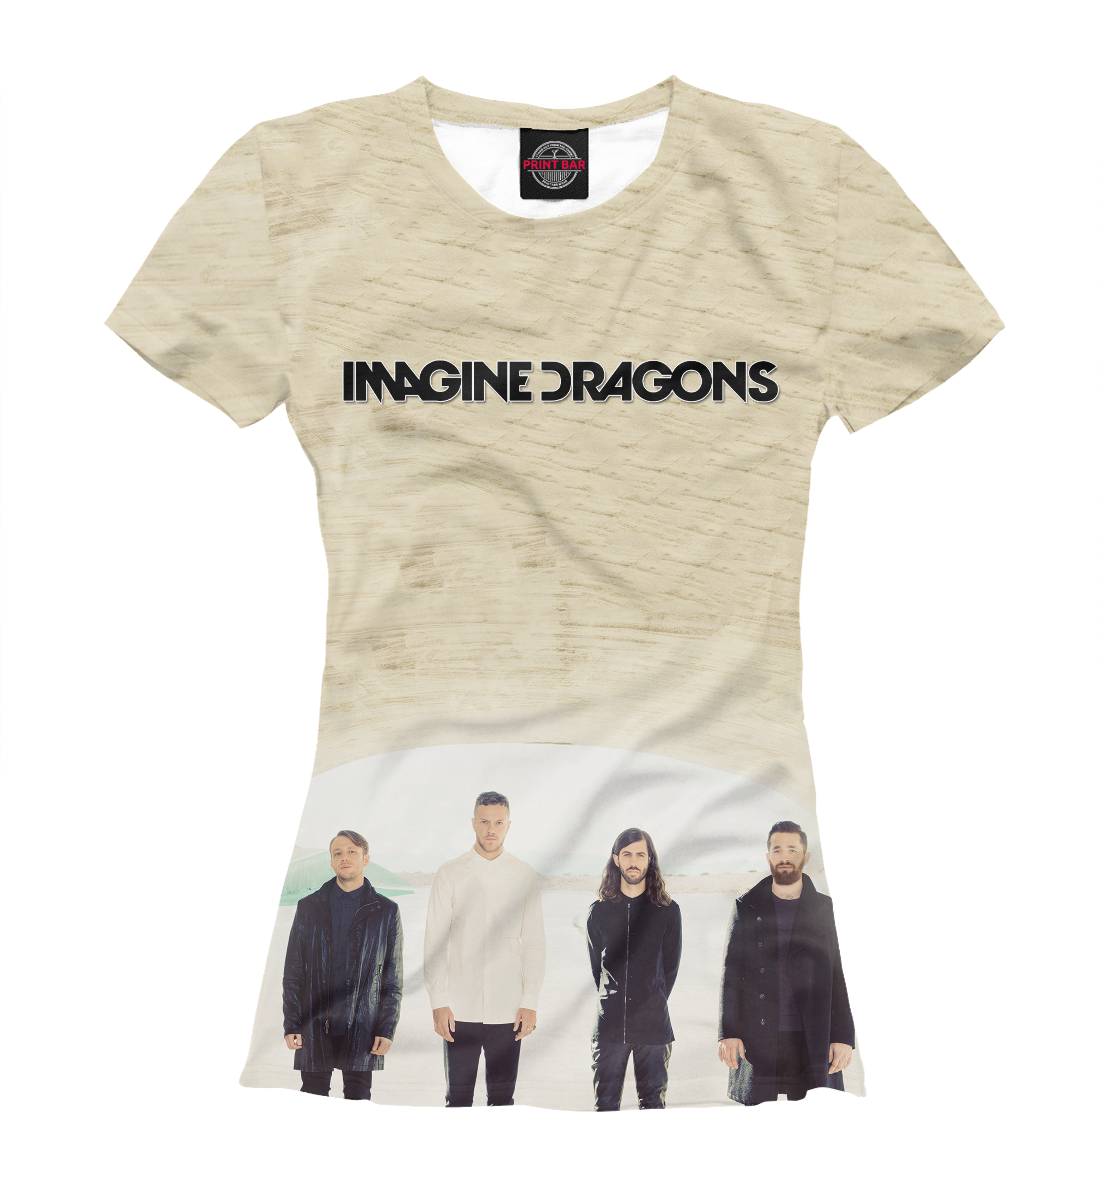 Купить Imagine Dragons, Printbar, Футболки, IMA-431668-fut-1